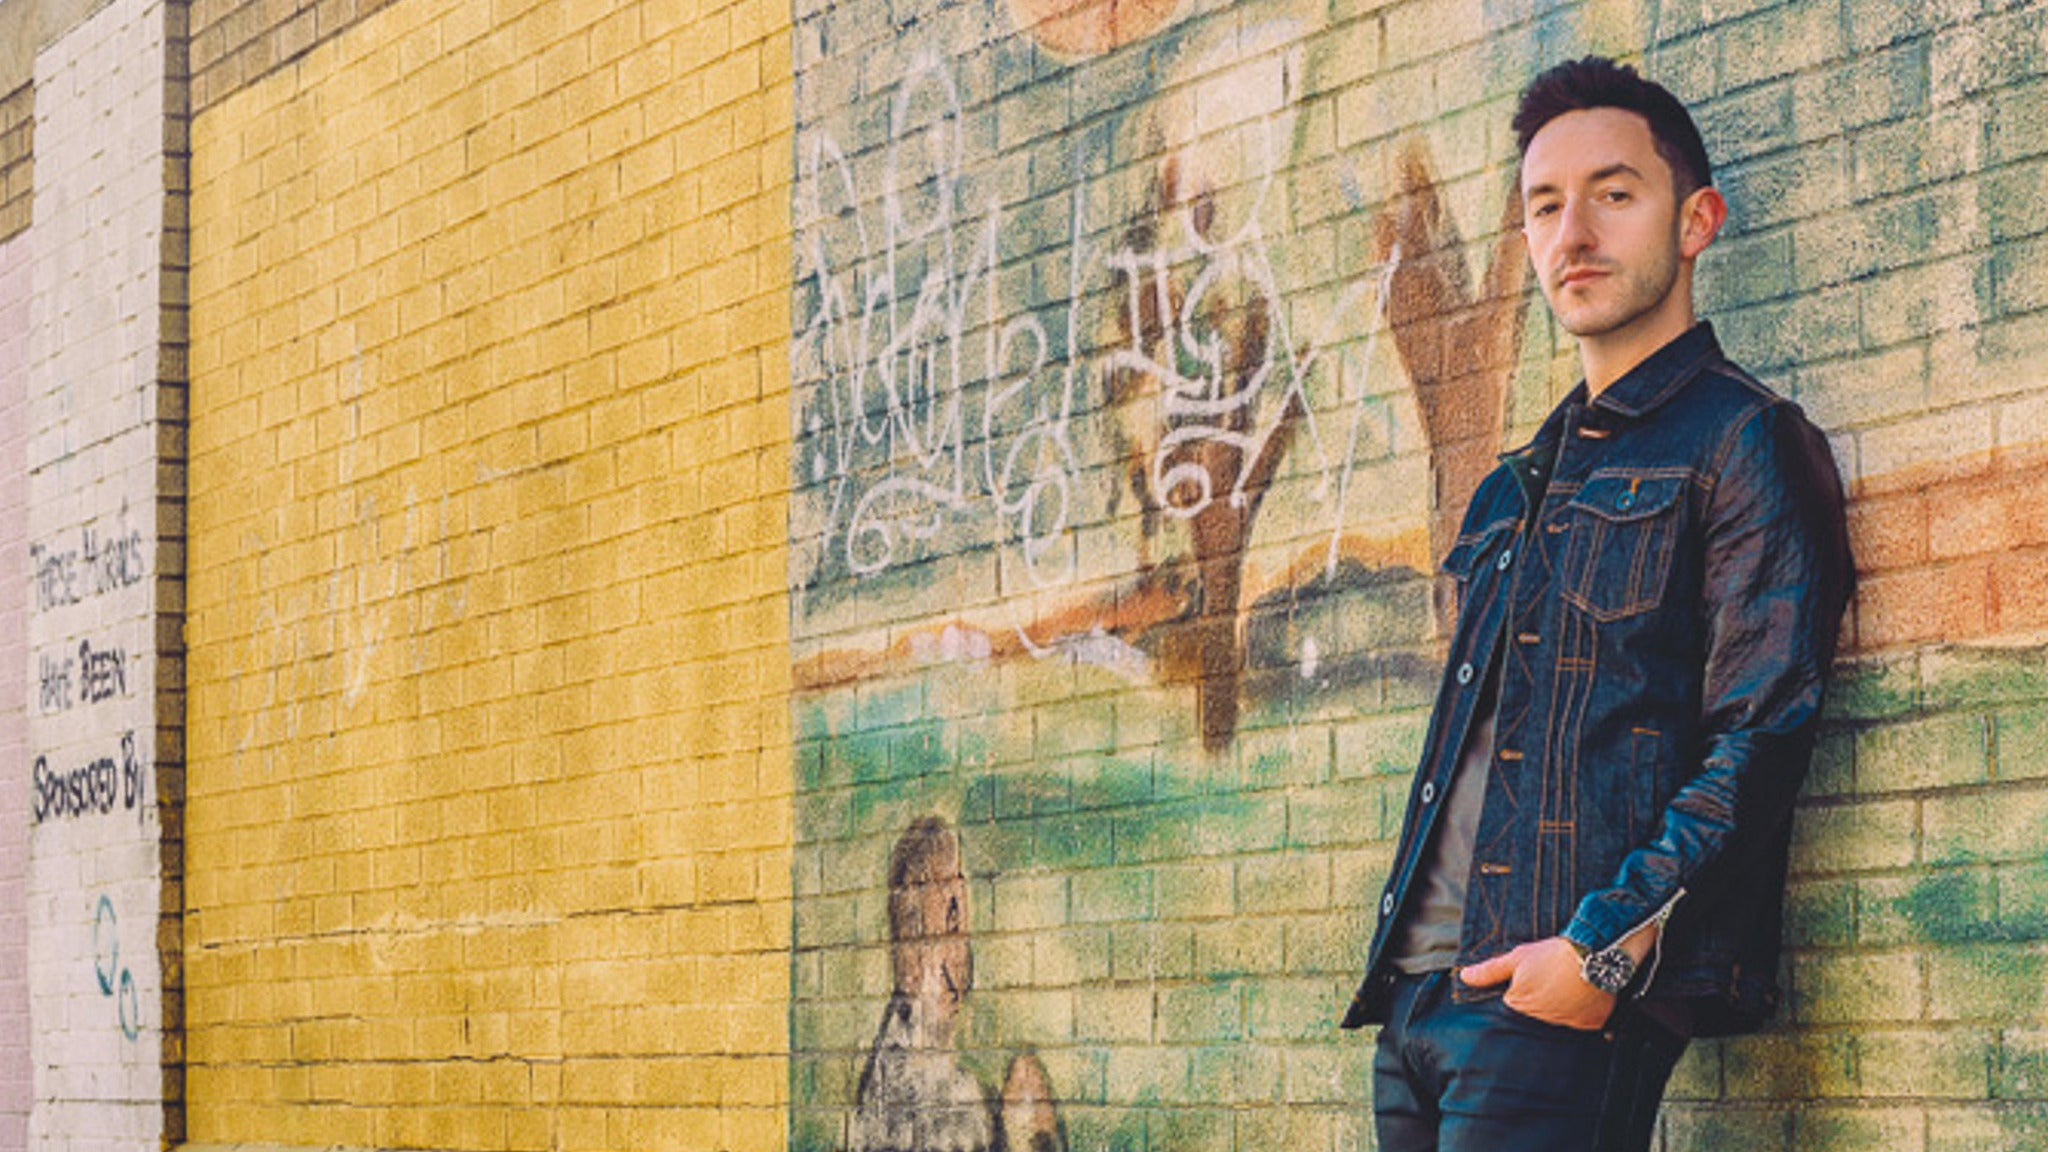 Matt Beilis at Ball State University Pruis Hall - Muncie, IN 47306